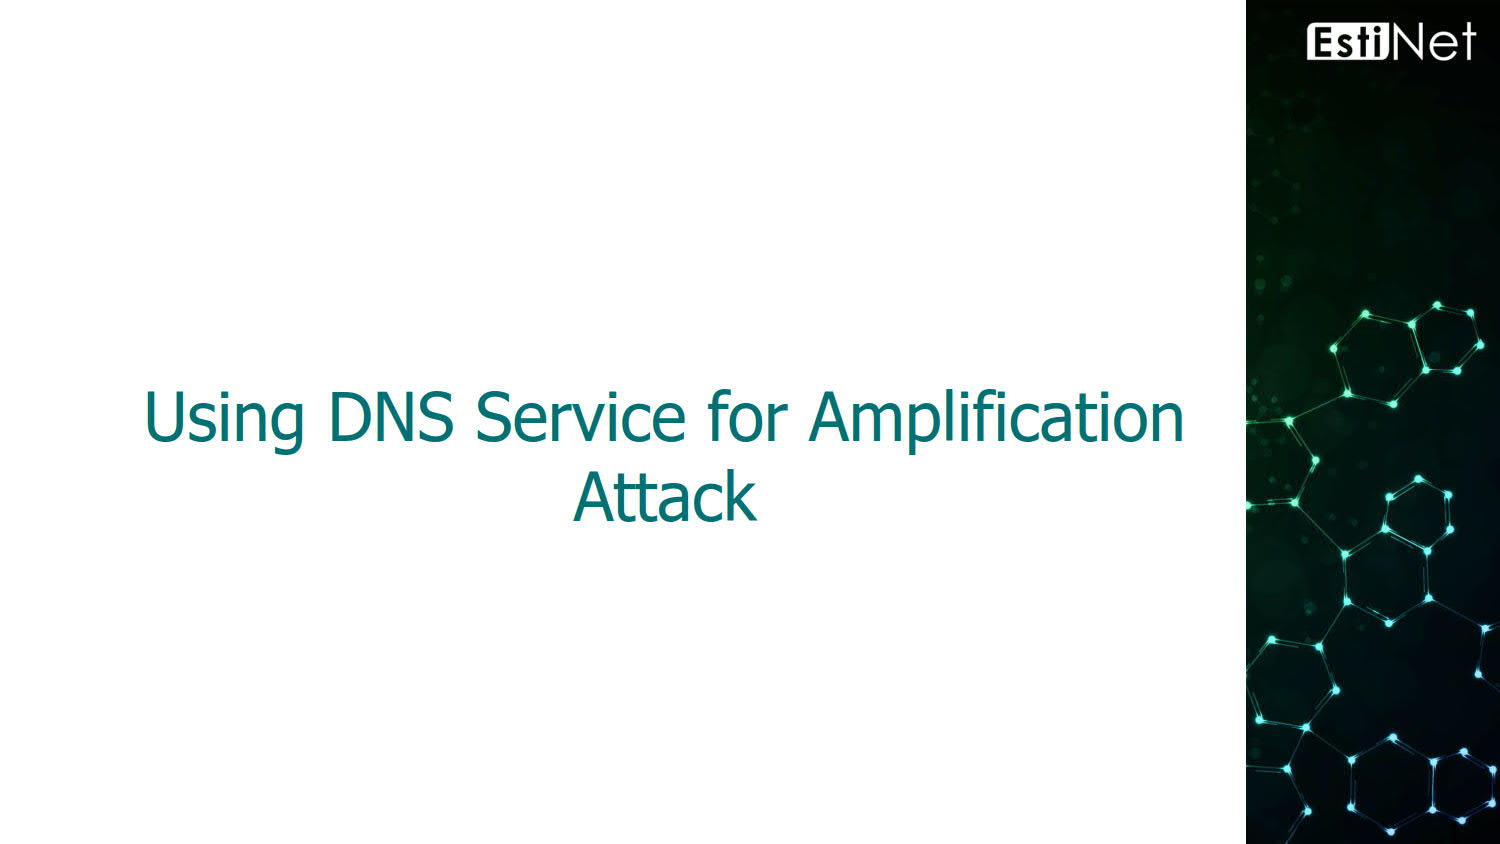 Using DNS Service for Amplification Attack_v1.0_20180726_01